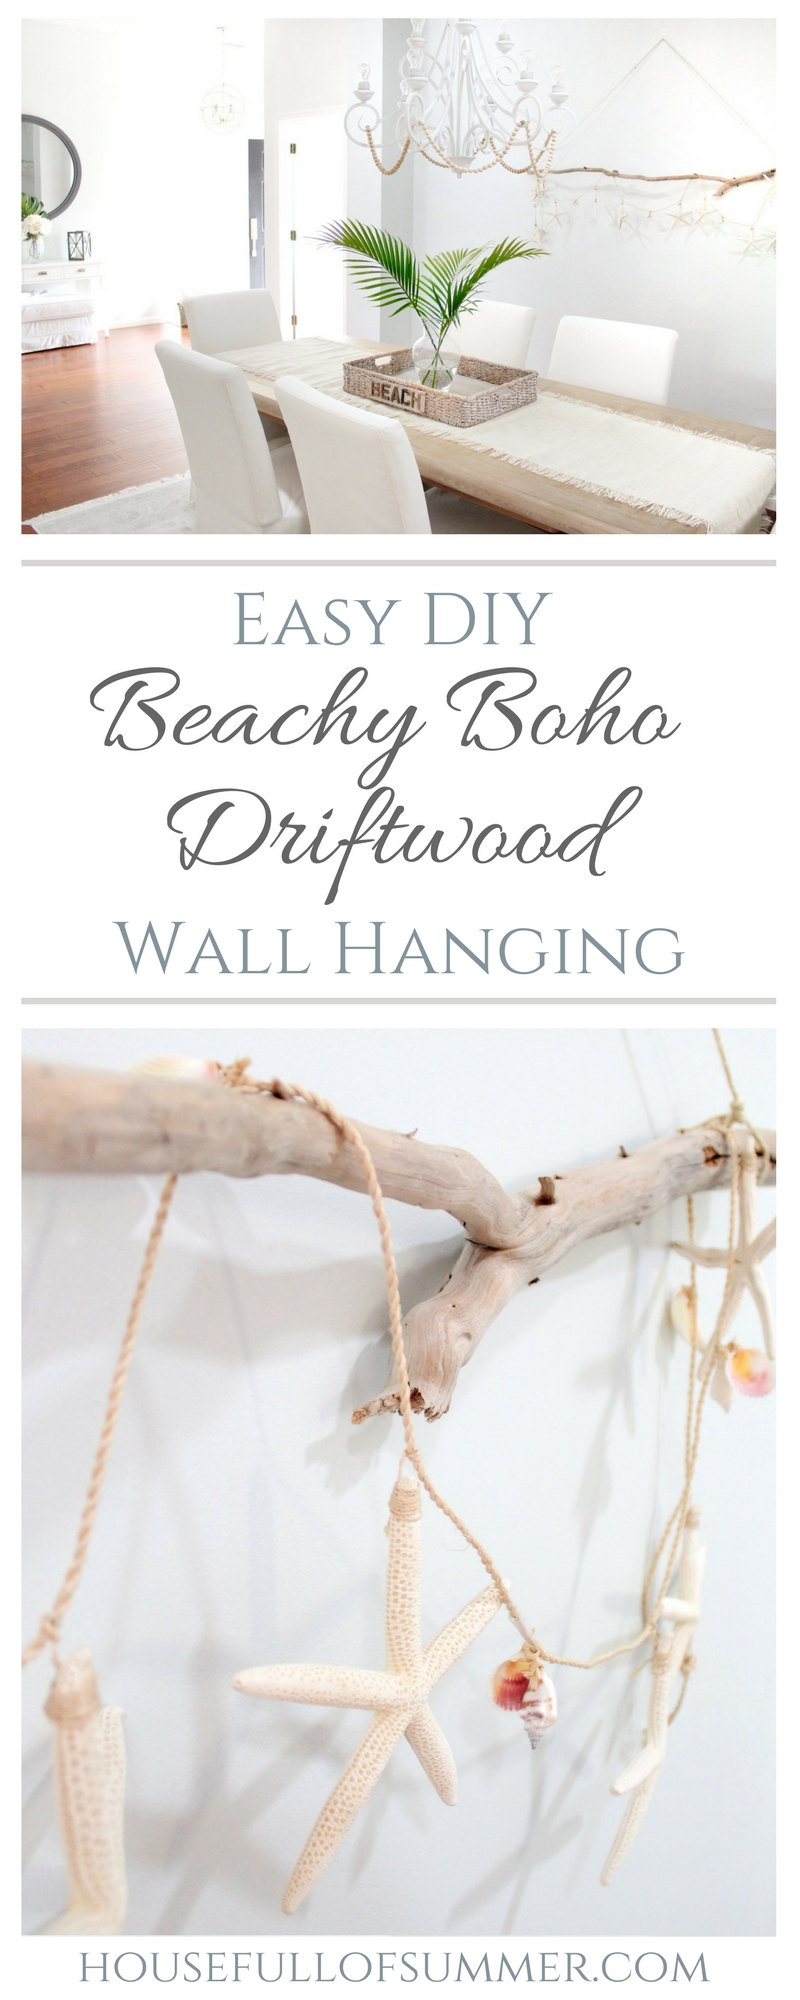 Easy DIY Beachy Boho Driftwood Wall Hanging | House Full of Summer blog, wall ideas, coastal decor, natural coatal style, starfish garland ideas, dining room decor, white slipcovered chairs, natural burlap table runner, white chandelier, beaded chandelier diy, sun tunnels, sky tubes, sky lights, foyer, fleur de sel sherwin williams, coastal paint colors